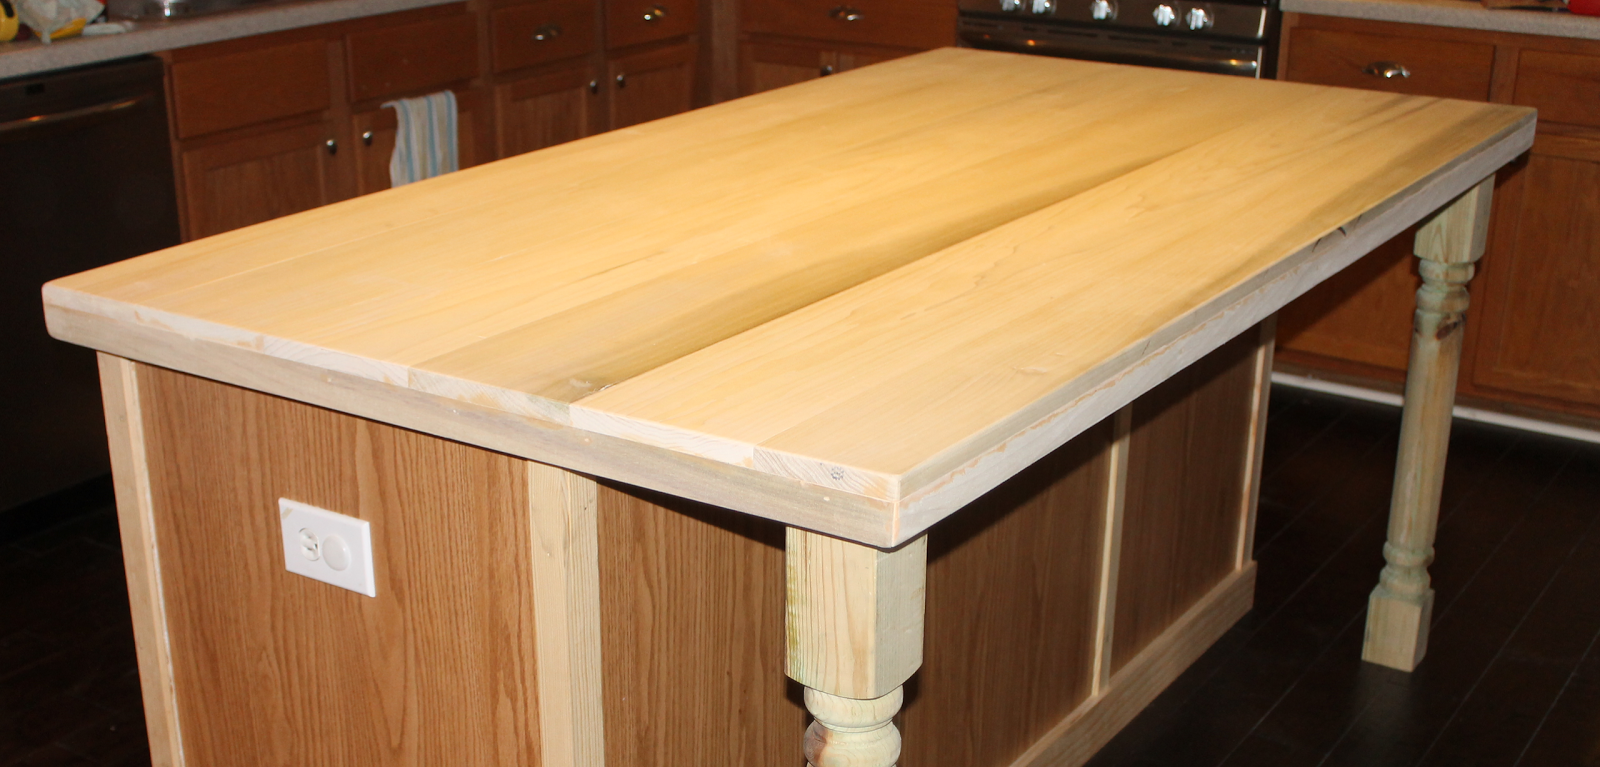 diy kitchen island countertop remodelaholic how to create faux reclaimed wood countertops 6847